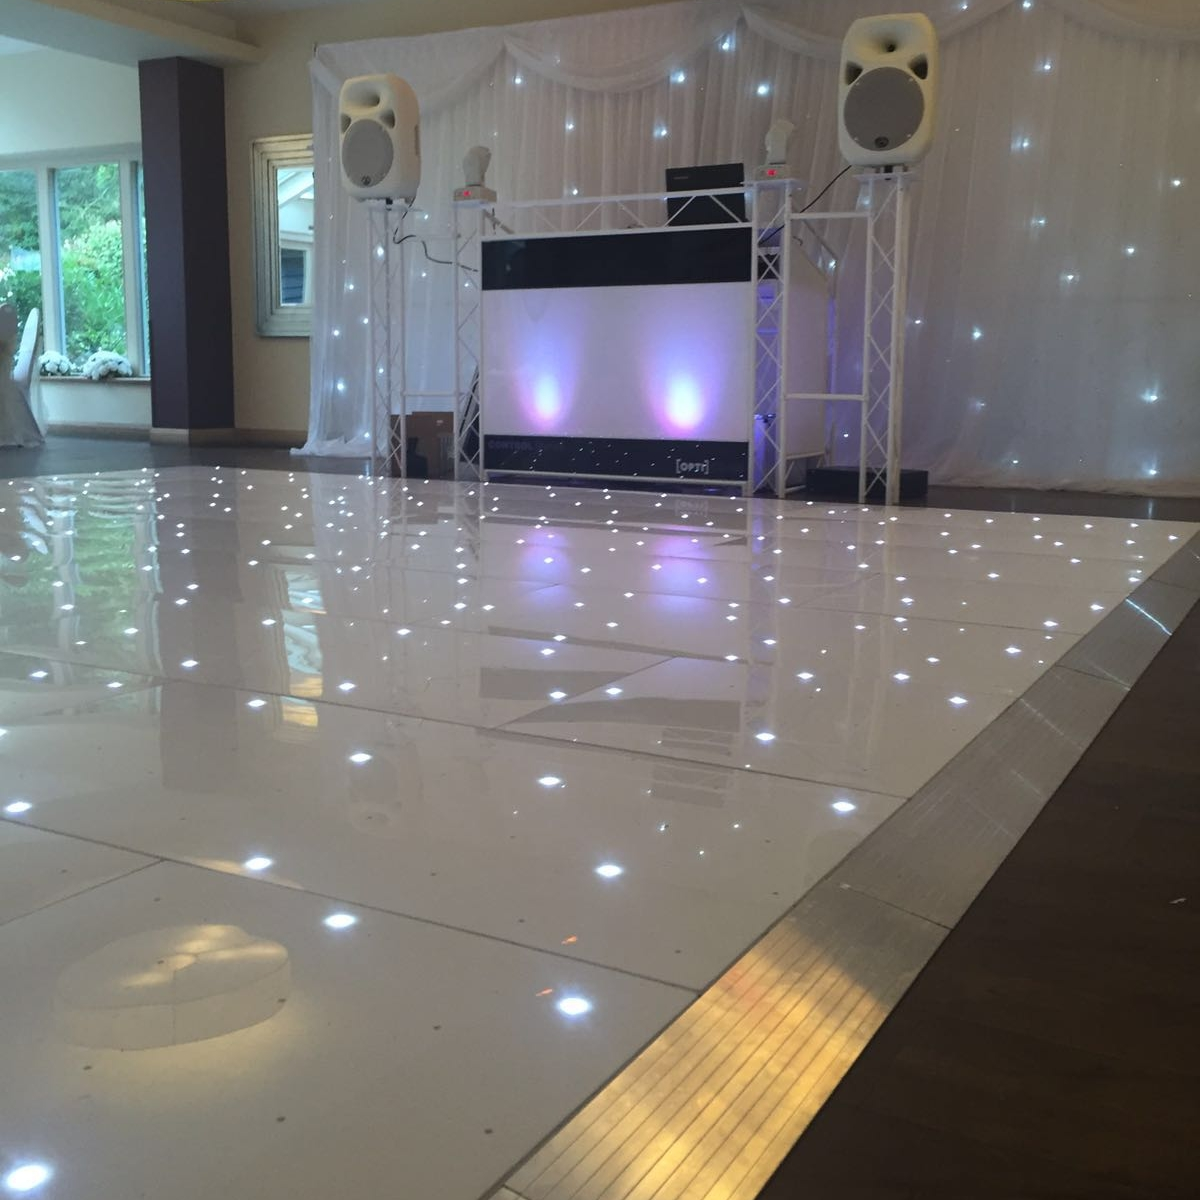 FLOOR FILLER EVENTS. Based in East Anglia     Website    If you're looking for a beautiful dance floor or superb DJ, then we can highly recommend these guys. We've had the pleasure of working with Ash who is a fantastic DJ with a very lovely personality. What we like about working alongside Ash specifically, is how thoughtful he was in making sure he didn't play any songs we were going to play. Also, we love that he encouraged guests to request their favourite songs and nothing was too much trouble. He's calm and just an all 'round great guy! I'm sure the rest of the team are equally as fab too!